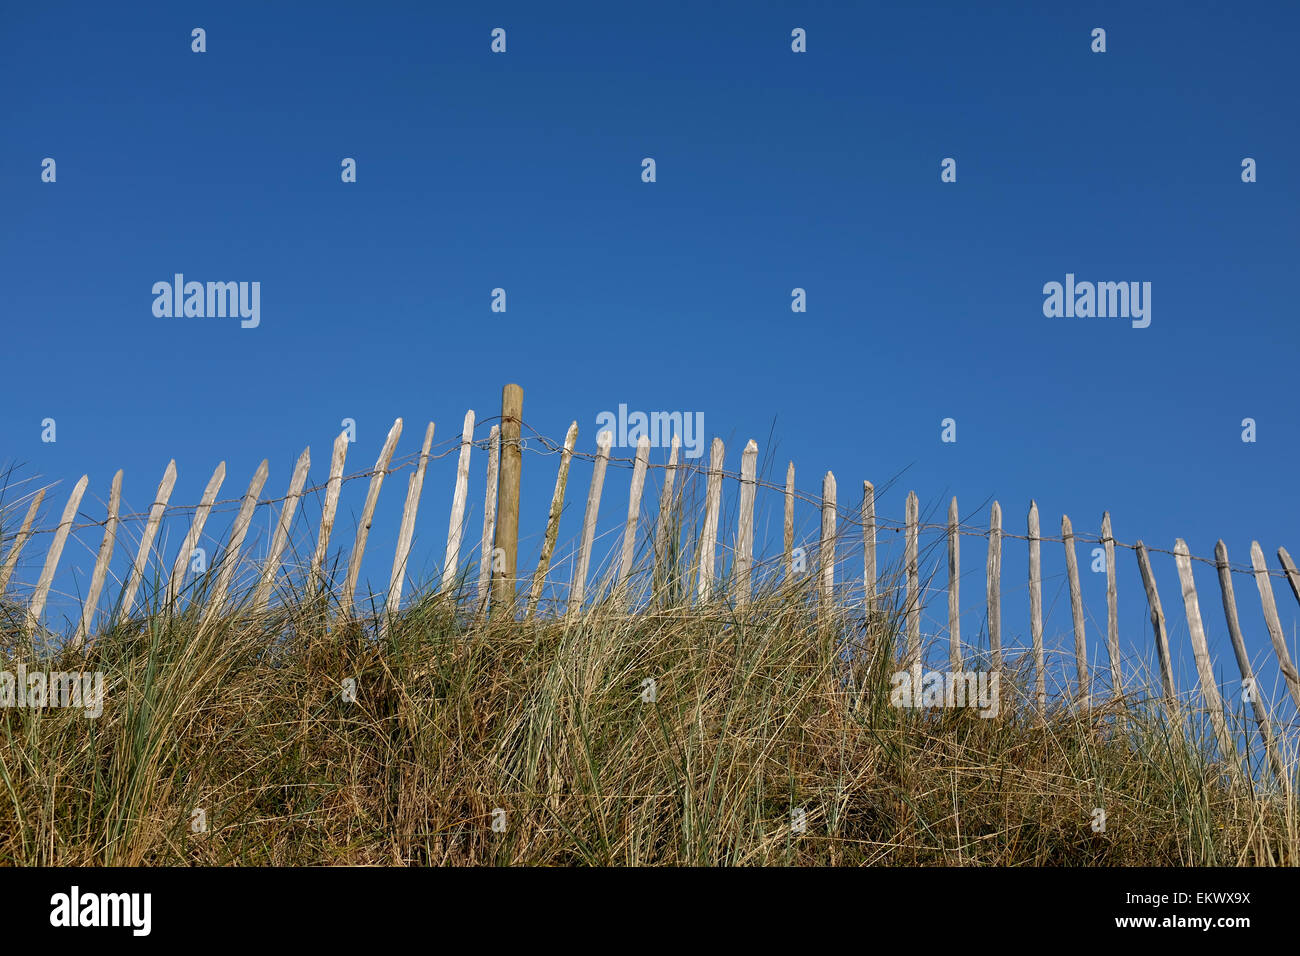 Wooden fence with a blue sky and long grass - Stock Image